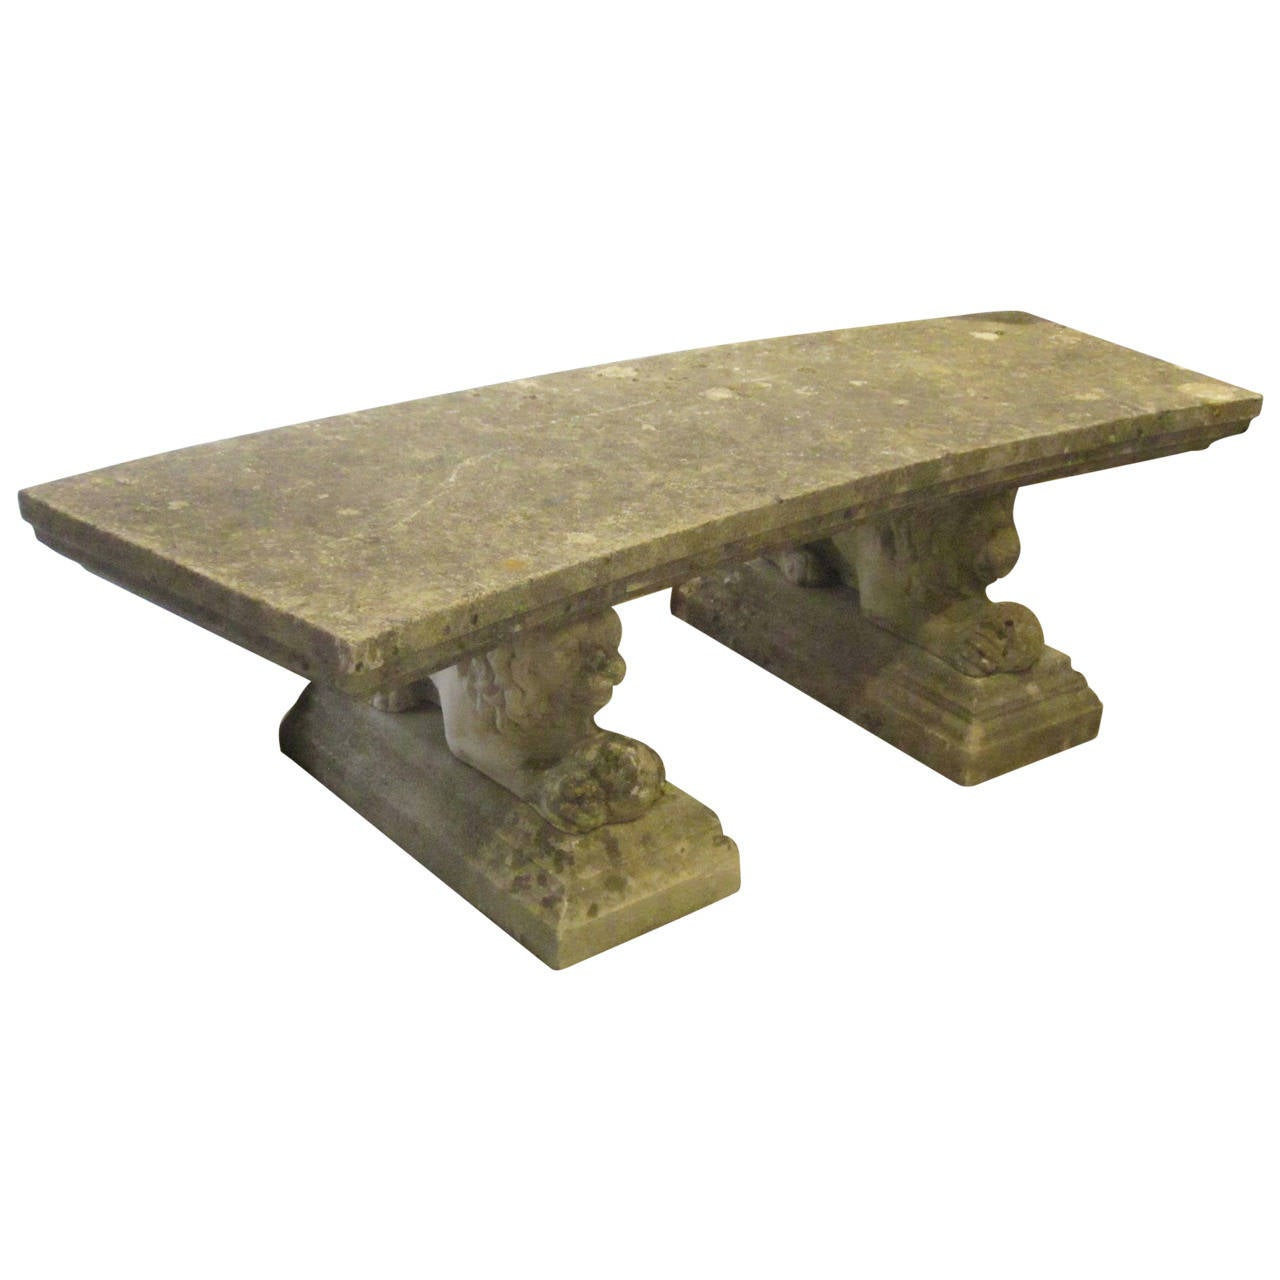 English stone curved garden bench with cast lion legs circa 1940s at 1stdibs Stone garden bench